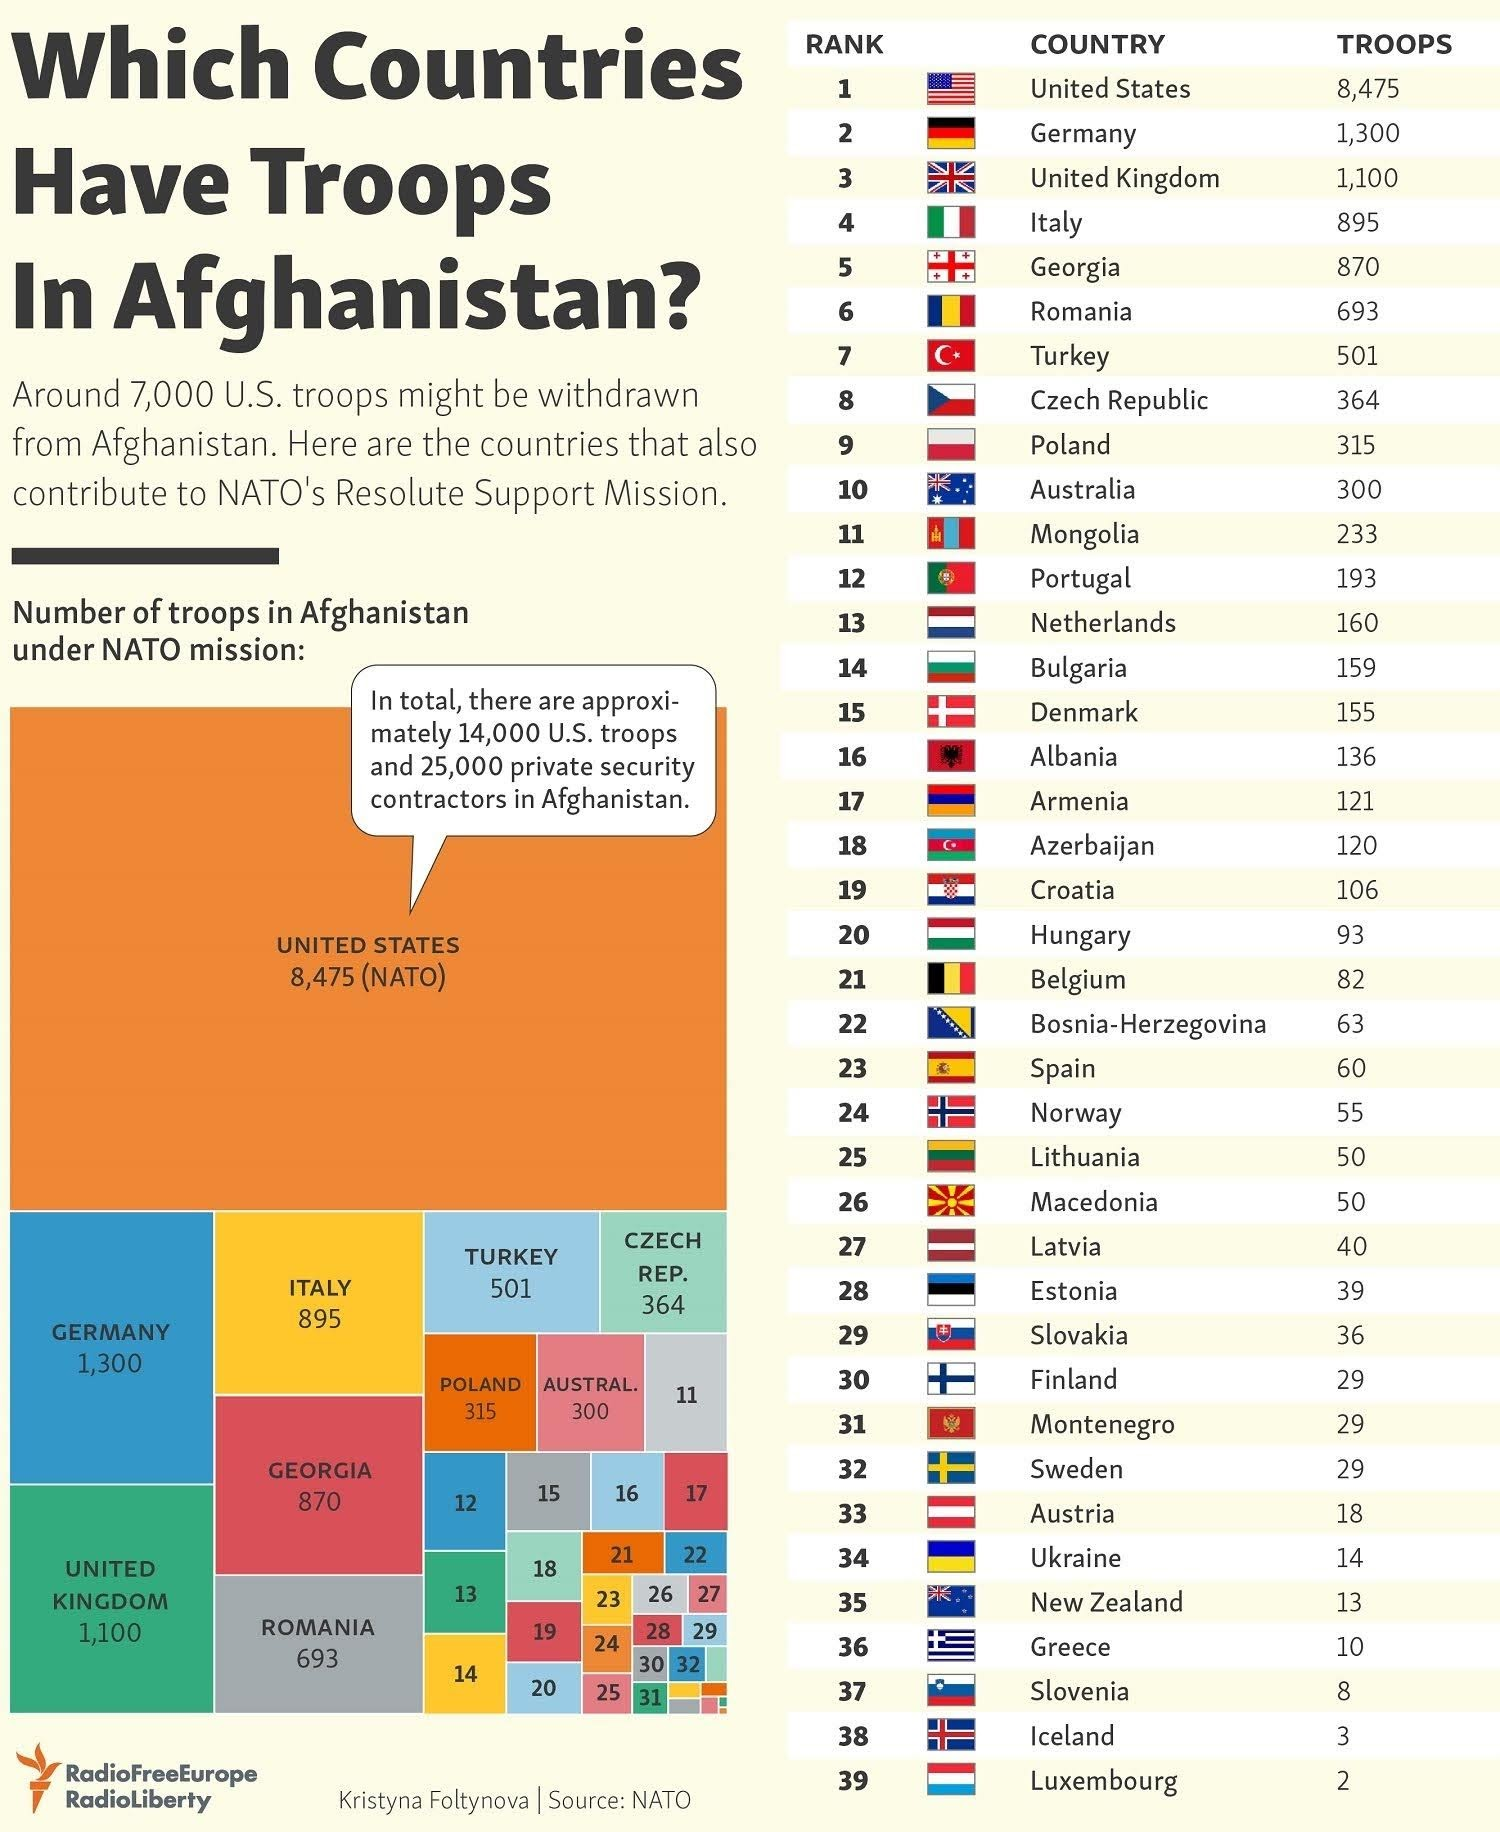 Which Countries Have Troops In Afghanistan?